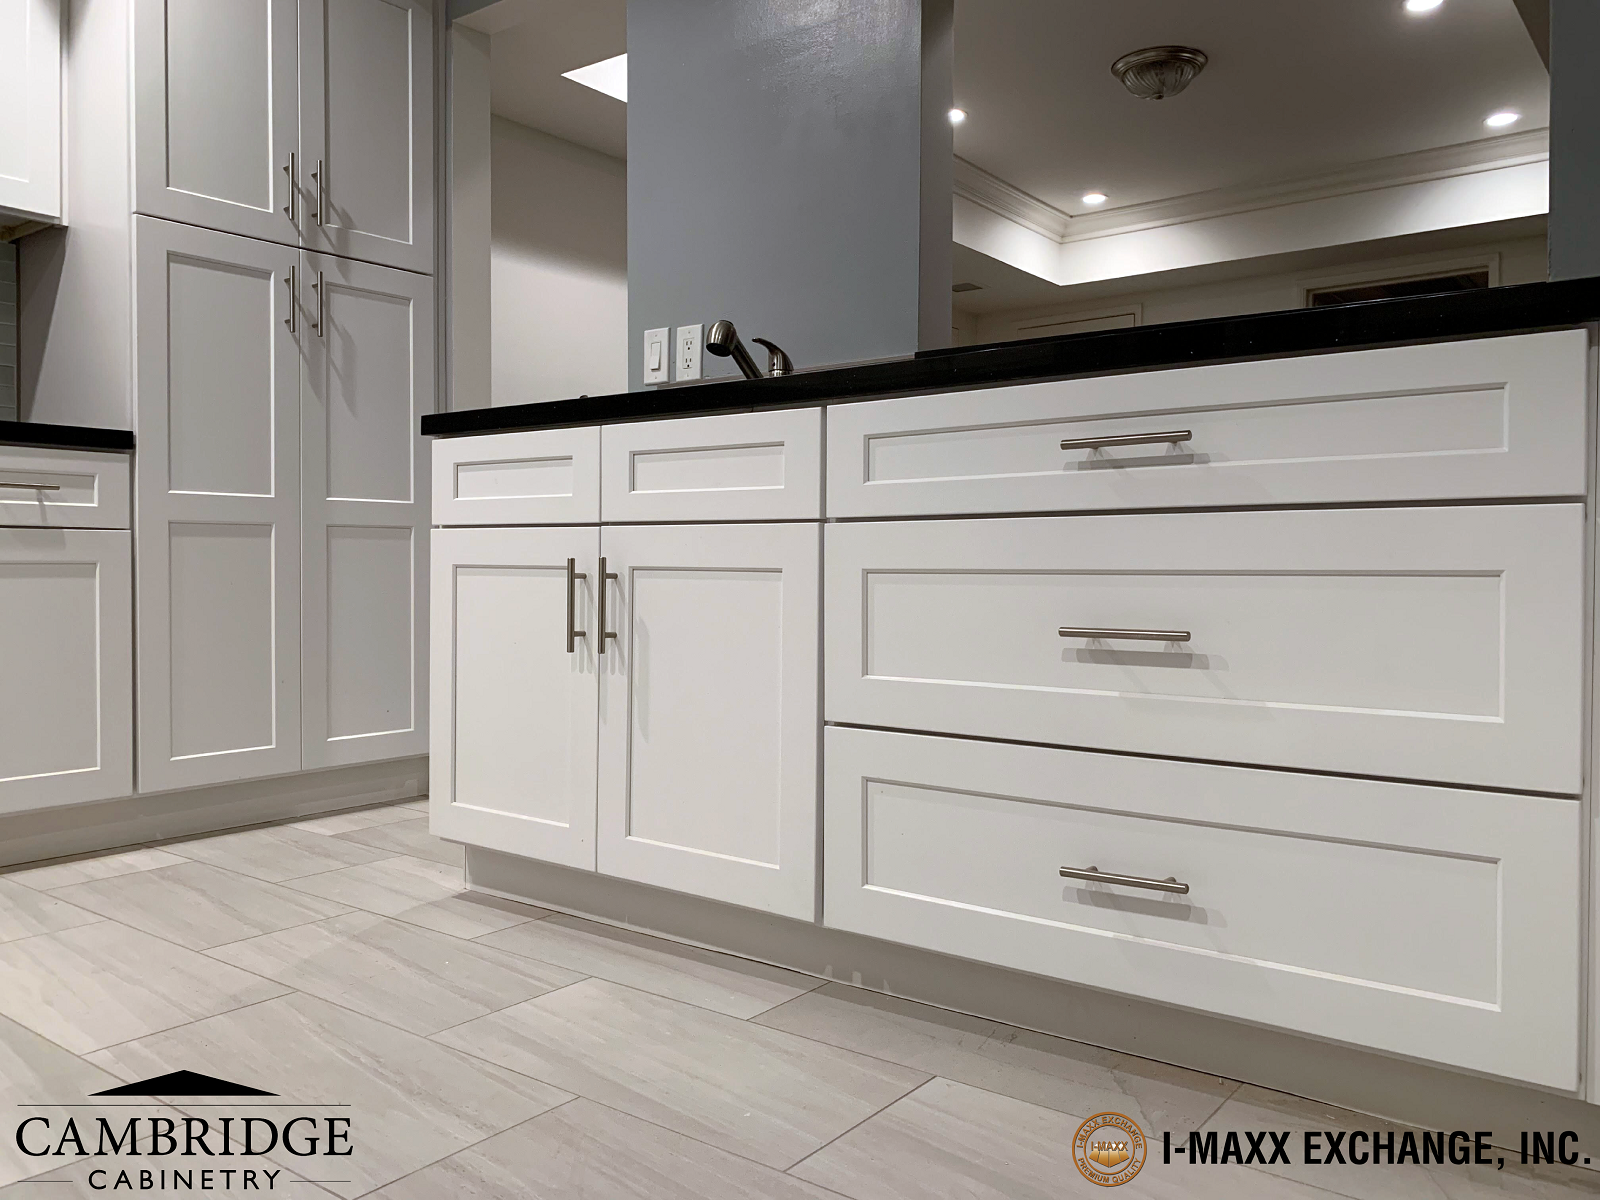 Project C - Cambridge Cabinetry - Shaker Snow White - RTA Cabinets